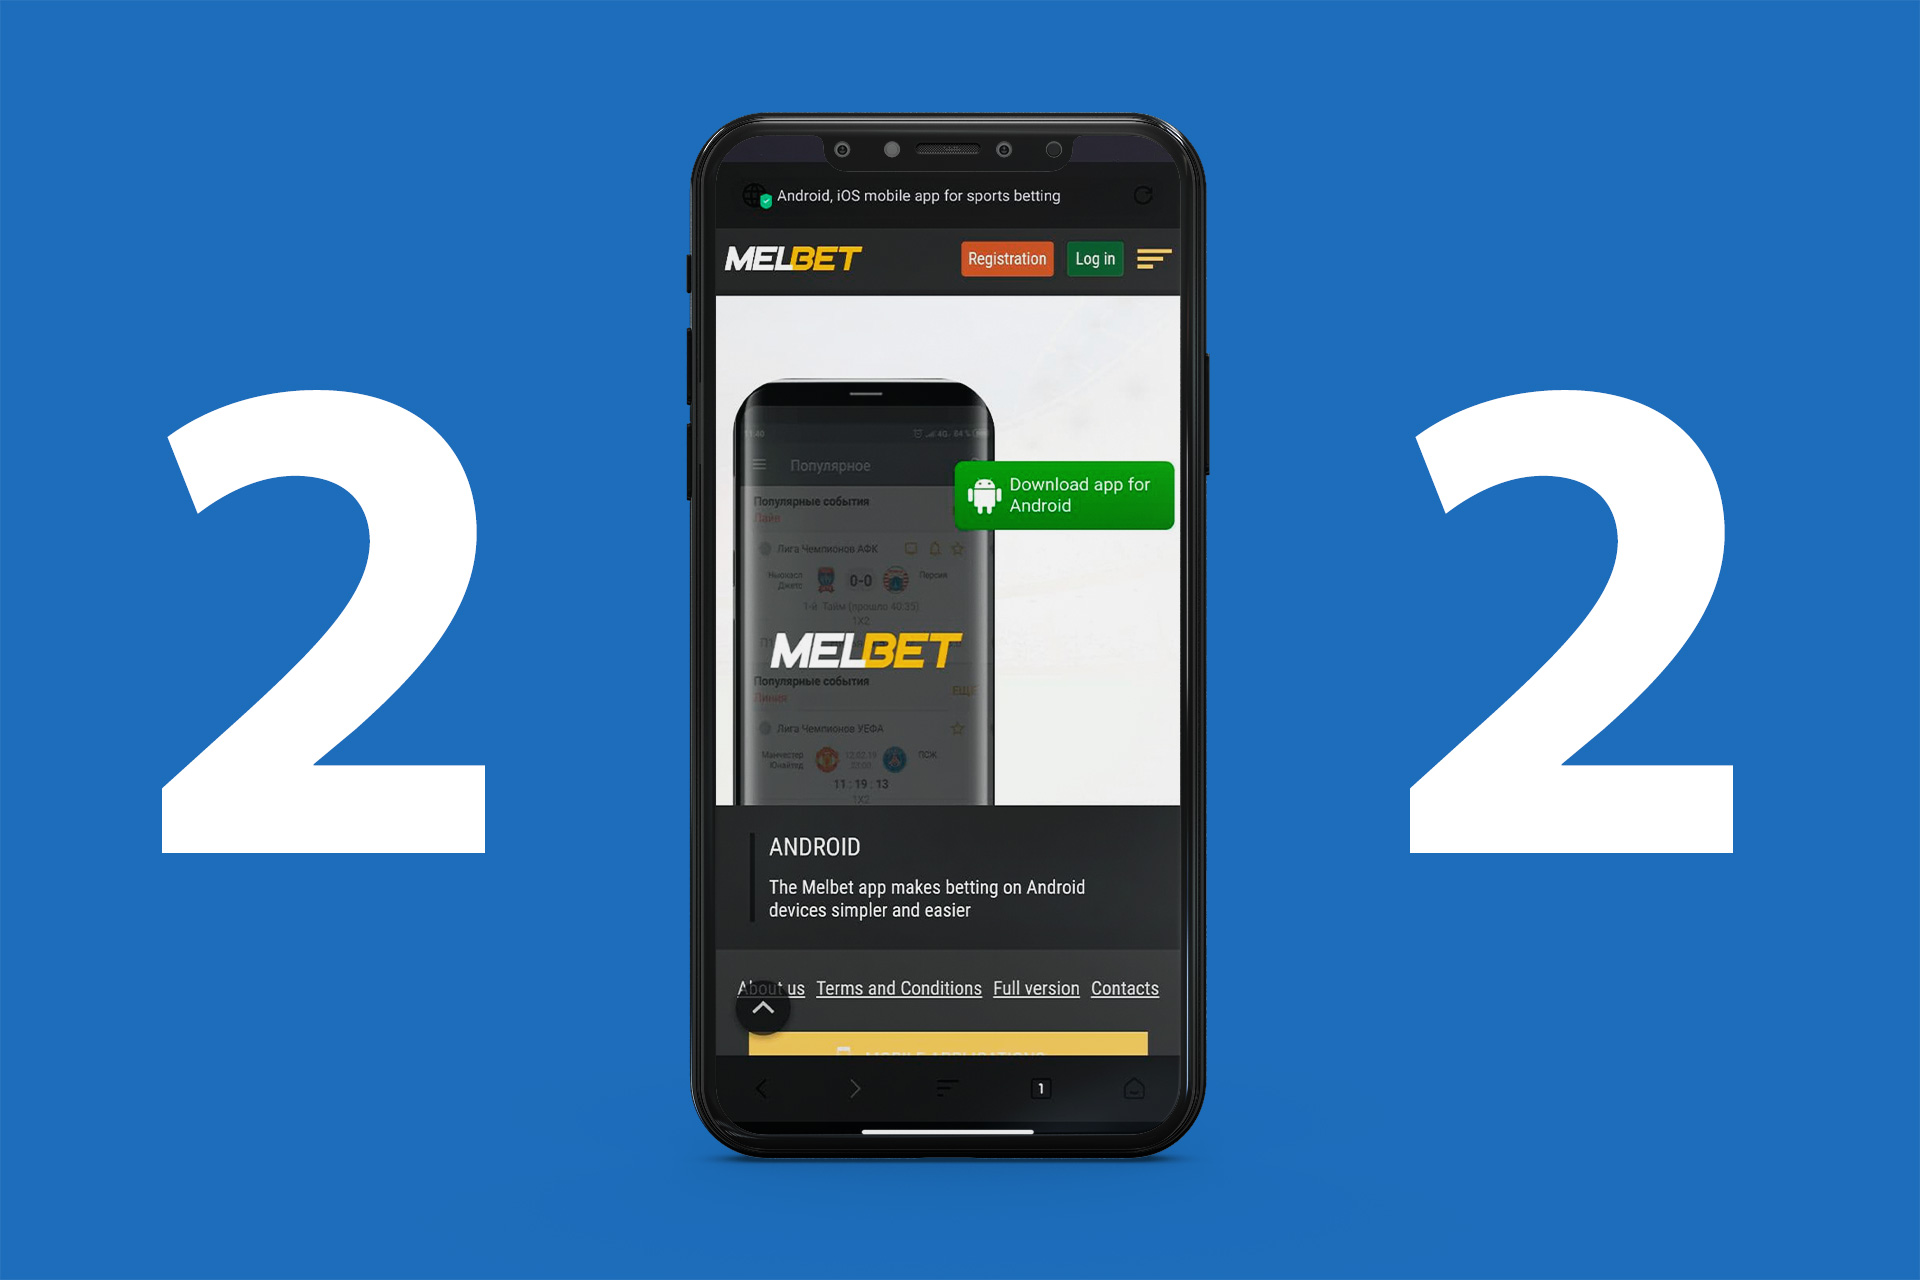 You can download apps from Google Play, App Store or straight from the official website.